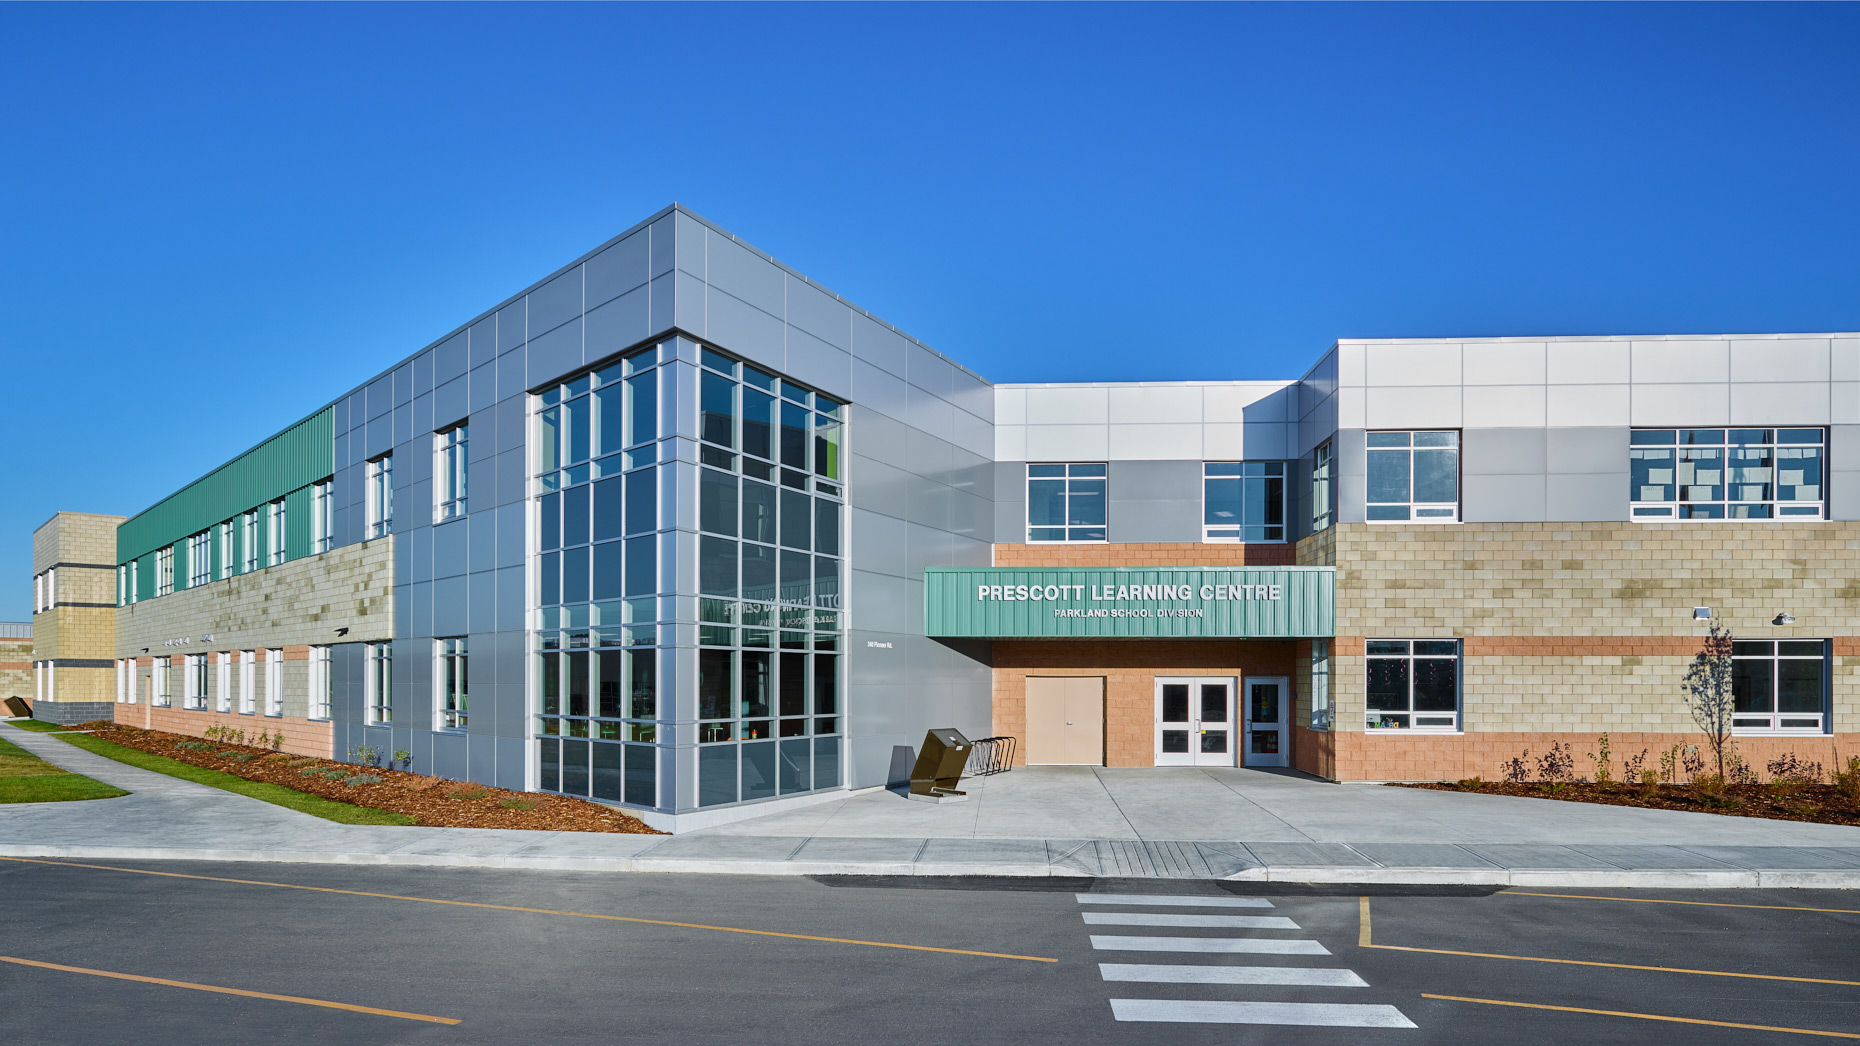 Beaverbrook Prescott Learning Centre in Spruce Grove, Alberta - Christophe Benard Photography, Edmonton Architectural Photographer, Edmonton Architectural Photography